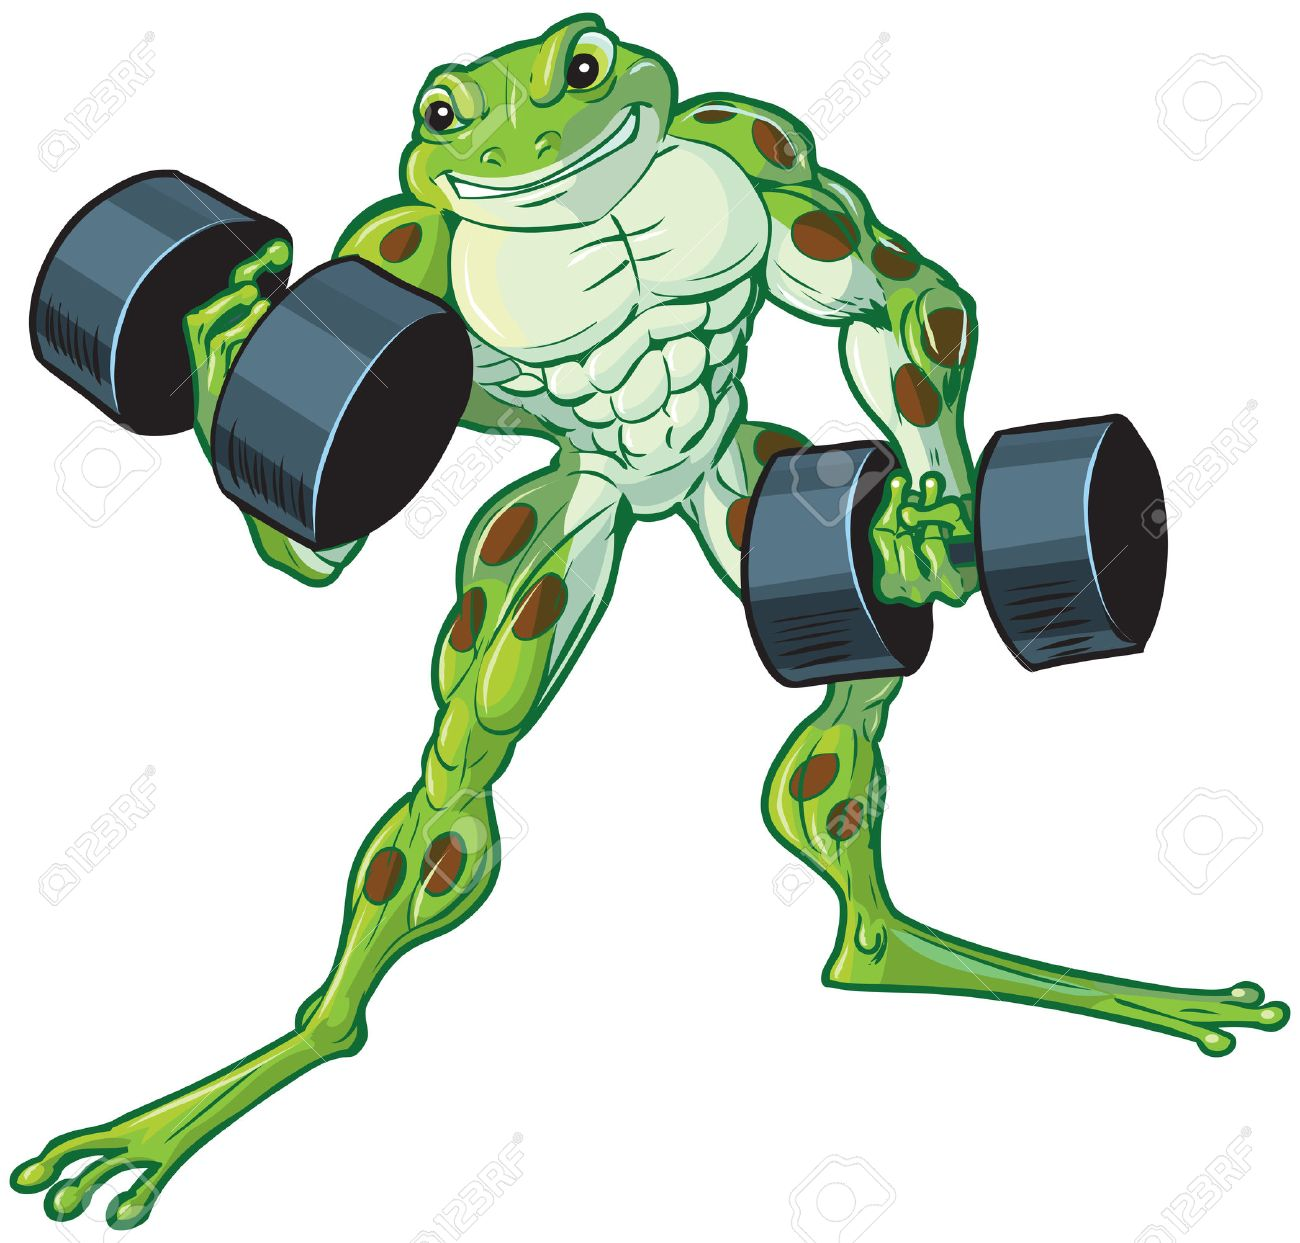 Vector cartoon clip art illustration of a tough muscular weightlifting frog curling or lifting dumbbells. - 50606770